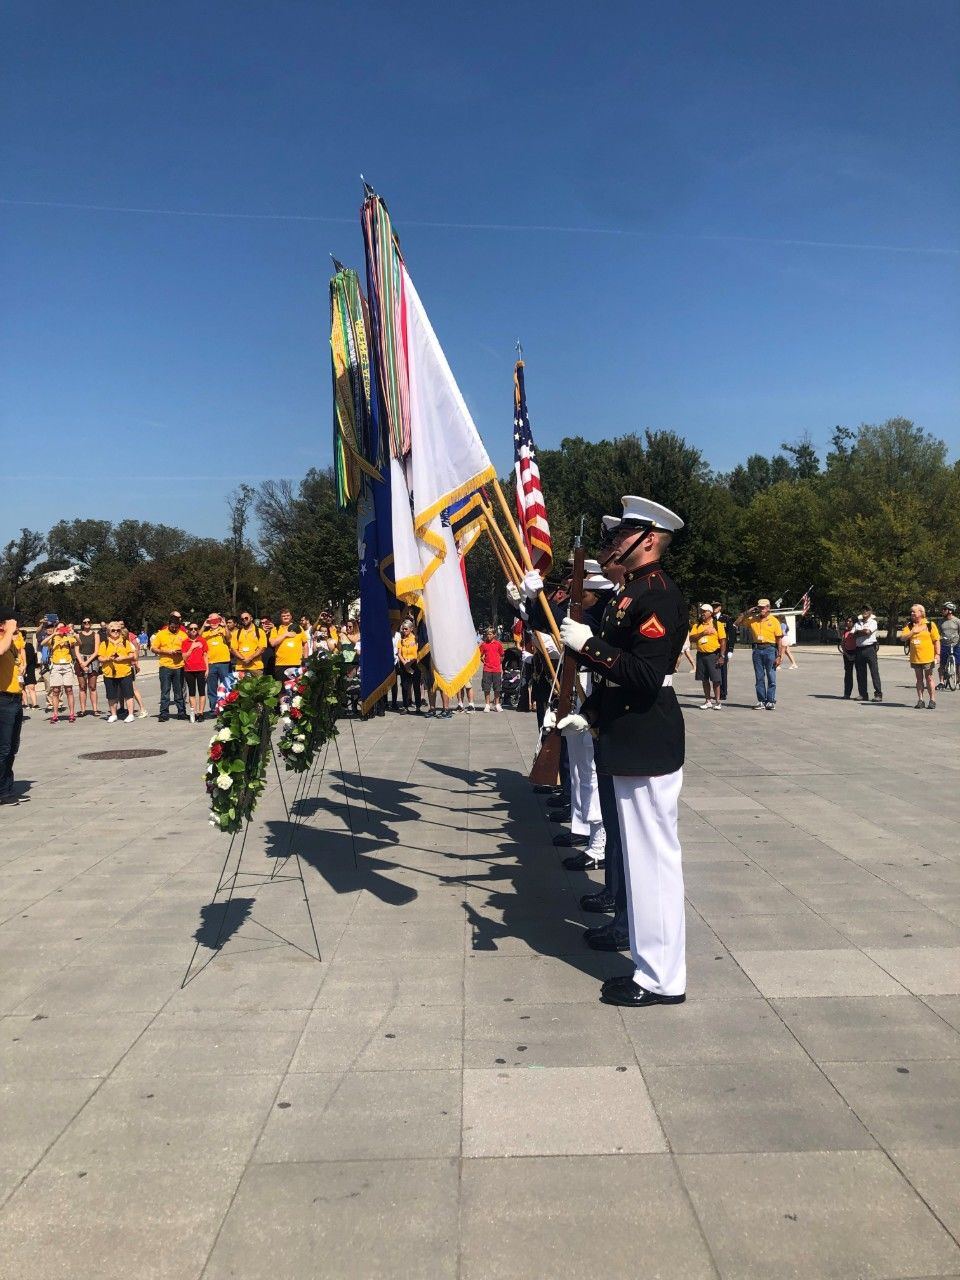 About 100 area veterans visited Washington, D.C. and the many memorials that pay tribute to their service. Photo credit: Hannah Watts